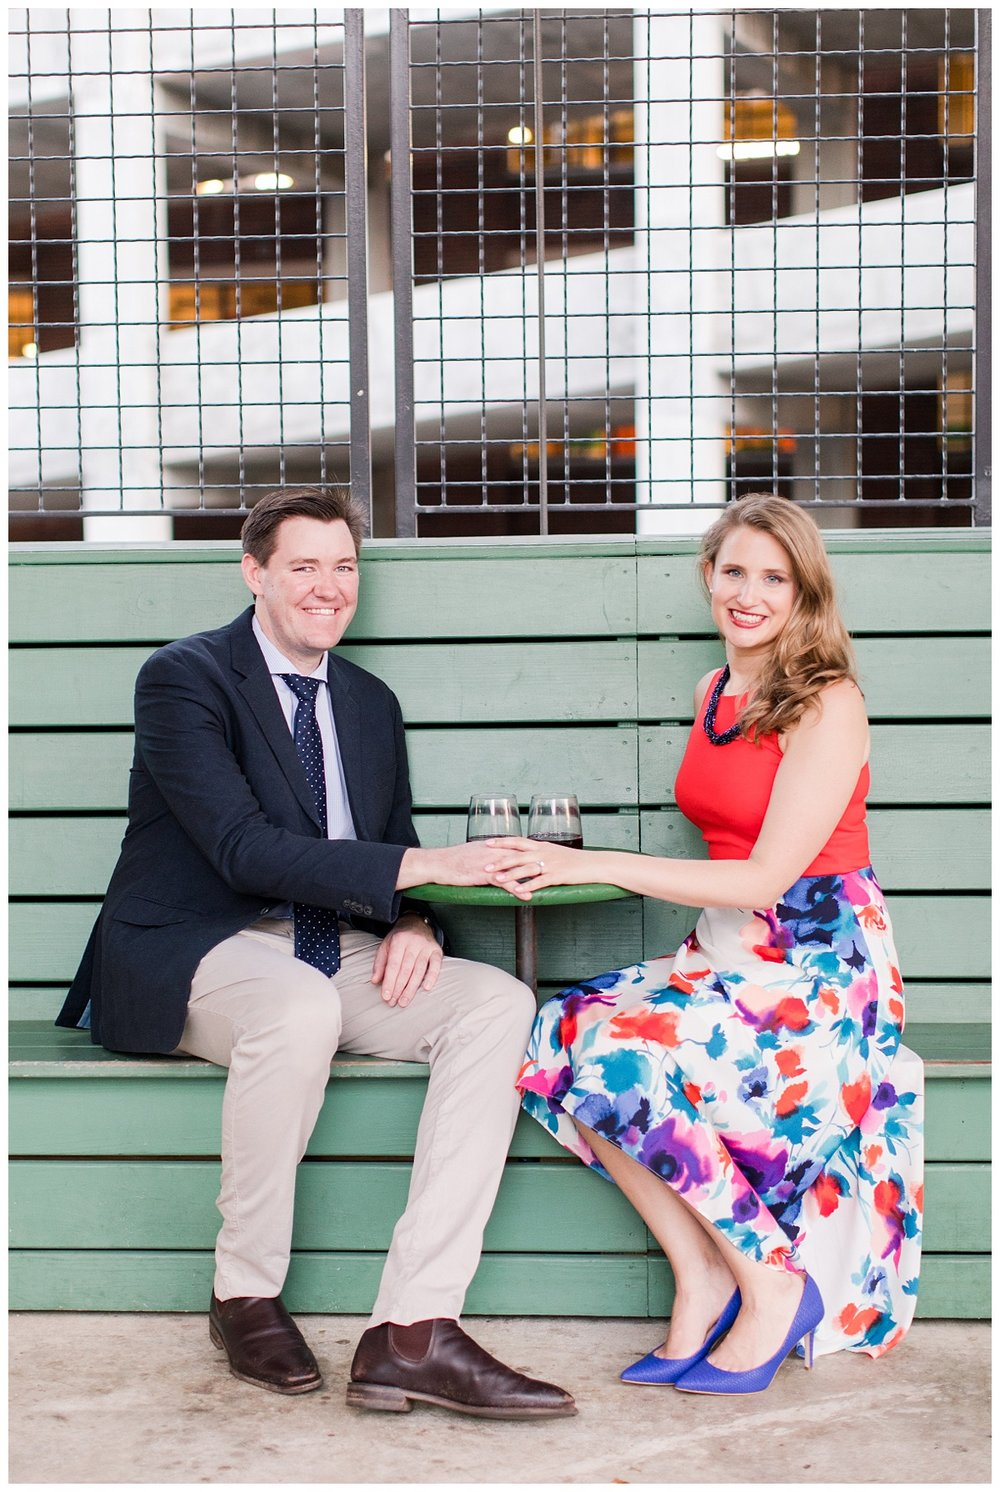 Engagement Pictures_KIm and Hamish_Abby Breaux Photography_Atlanta_Ponce City Market_Jackson Street Bridge_0058.jpg